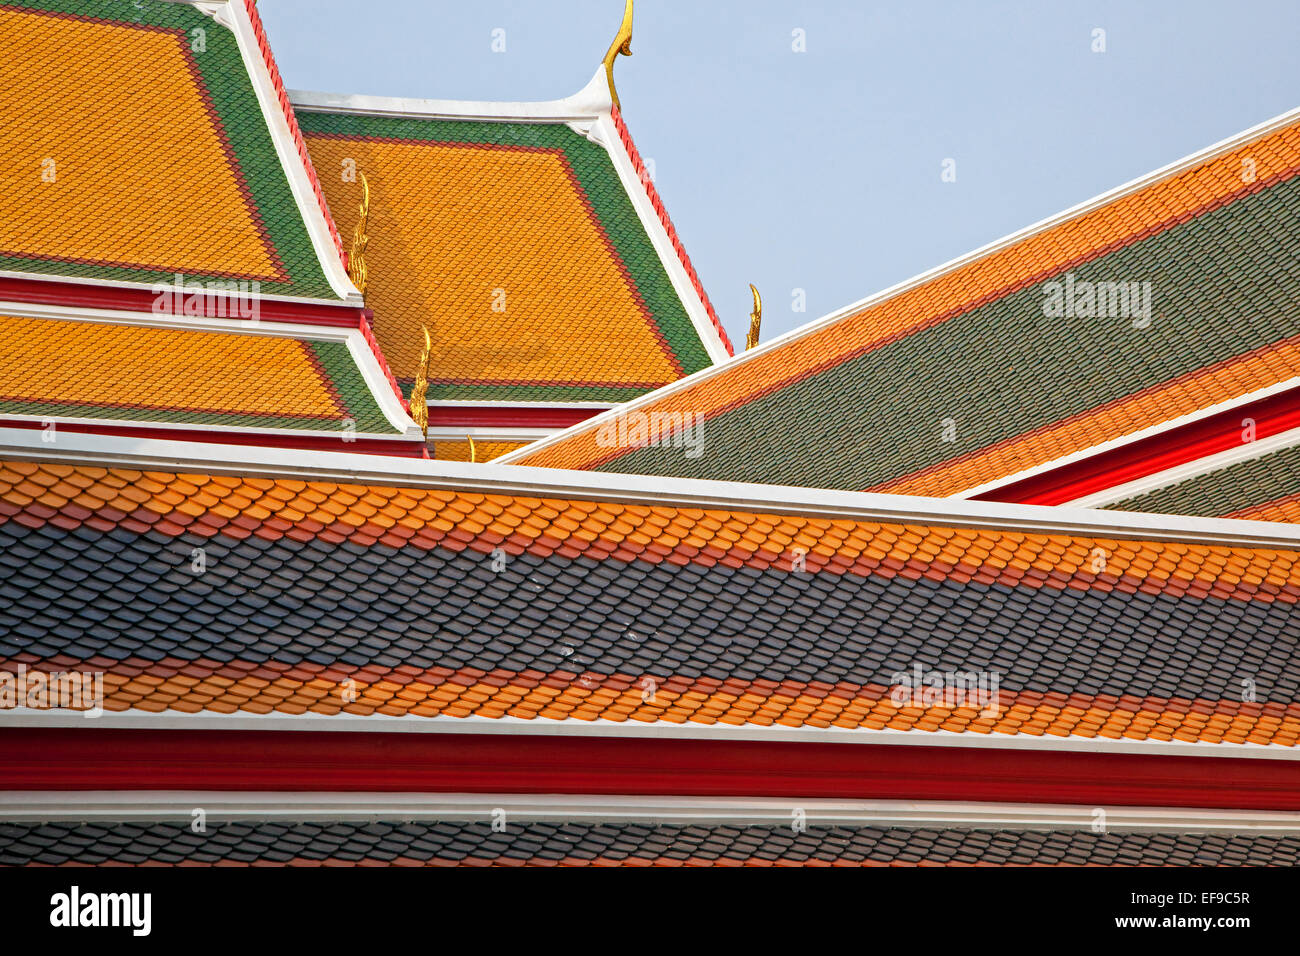 Colourful tiles on rooftops of the Wat Pho complex / Temple of the Reclining Buddha, Buddhist temple, Phra Nakhon, - Stock Image